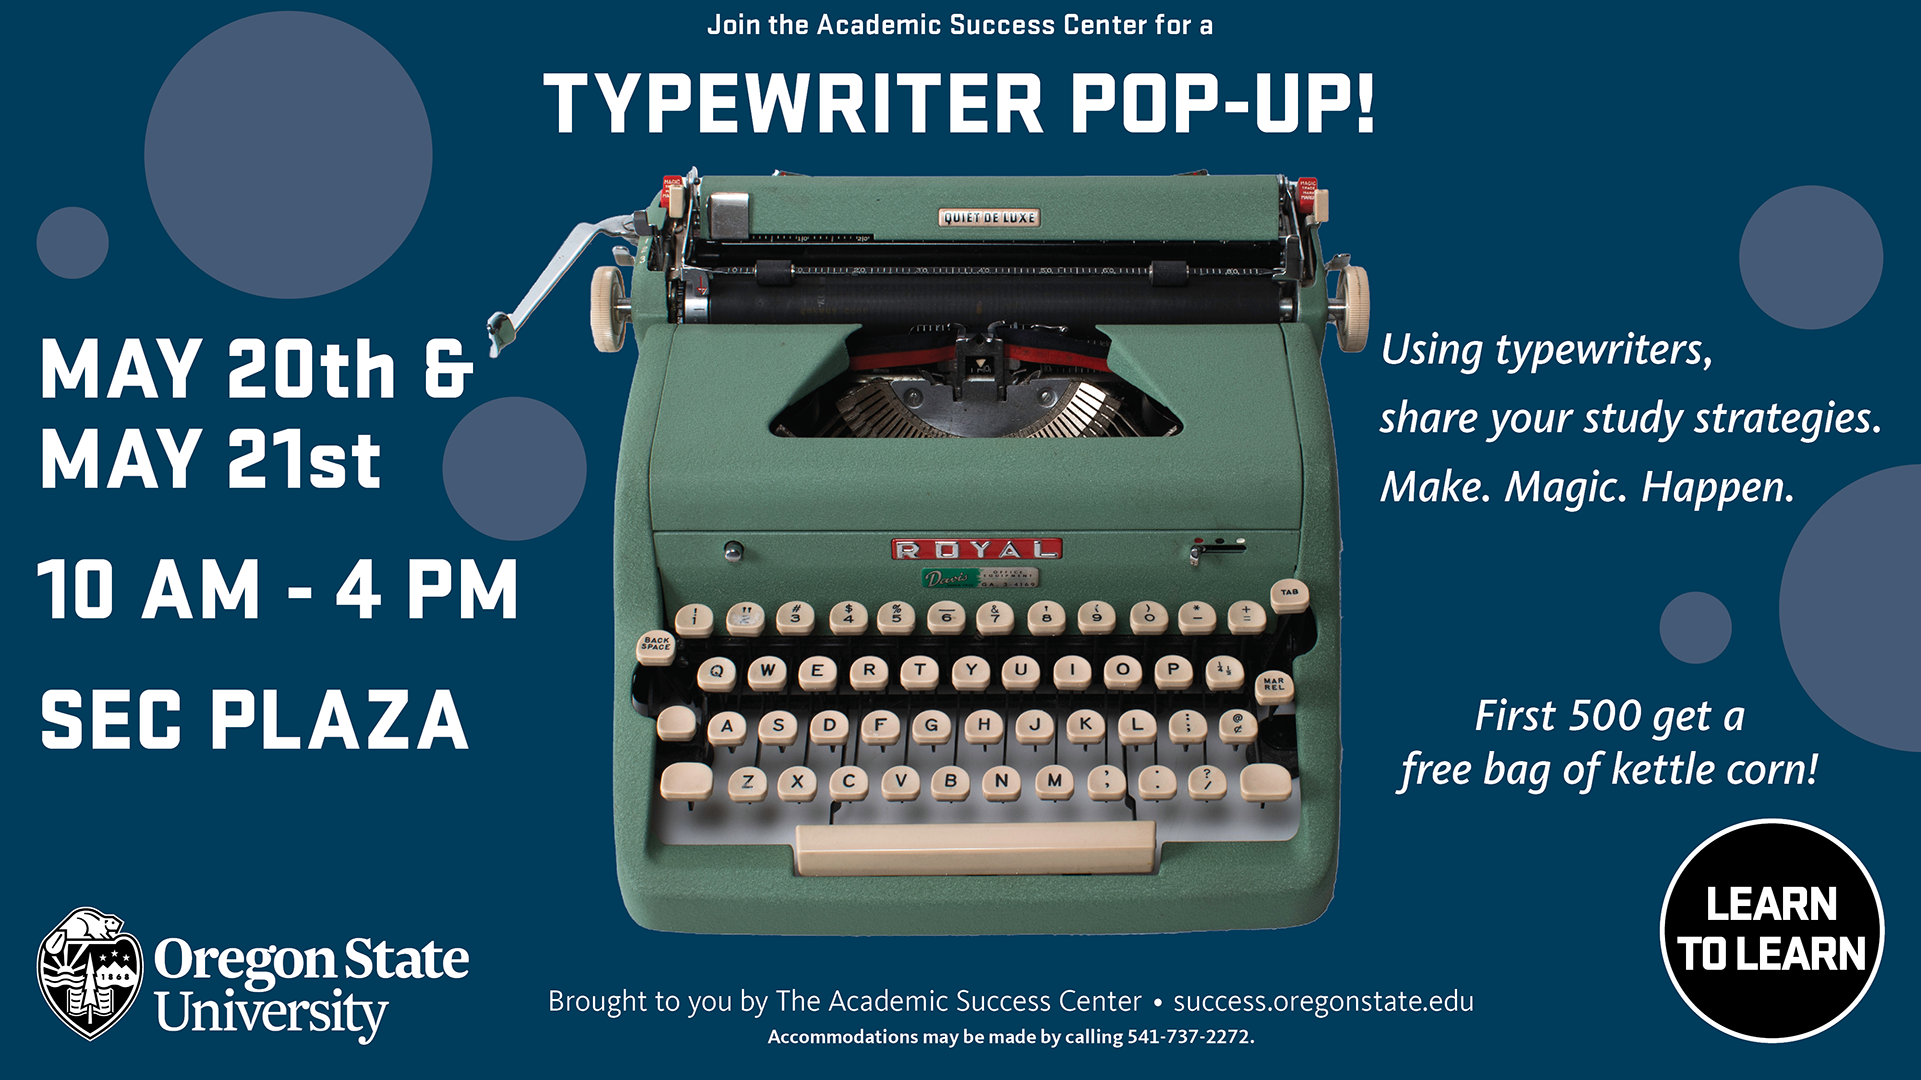 Typewriter Pop-Up event